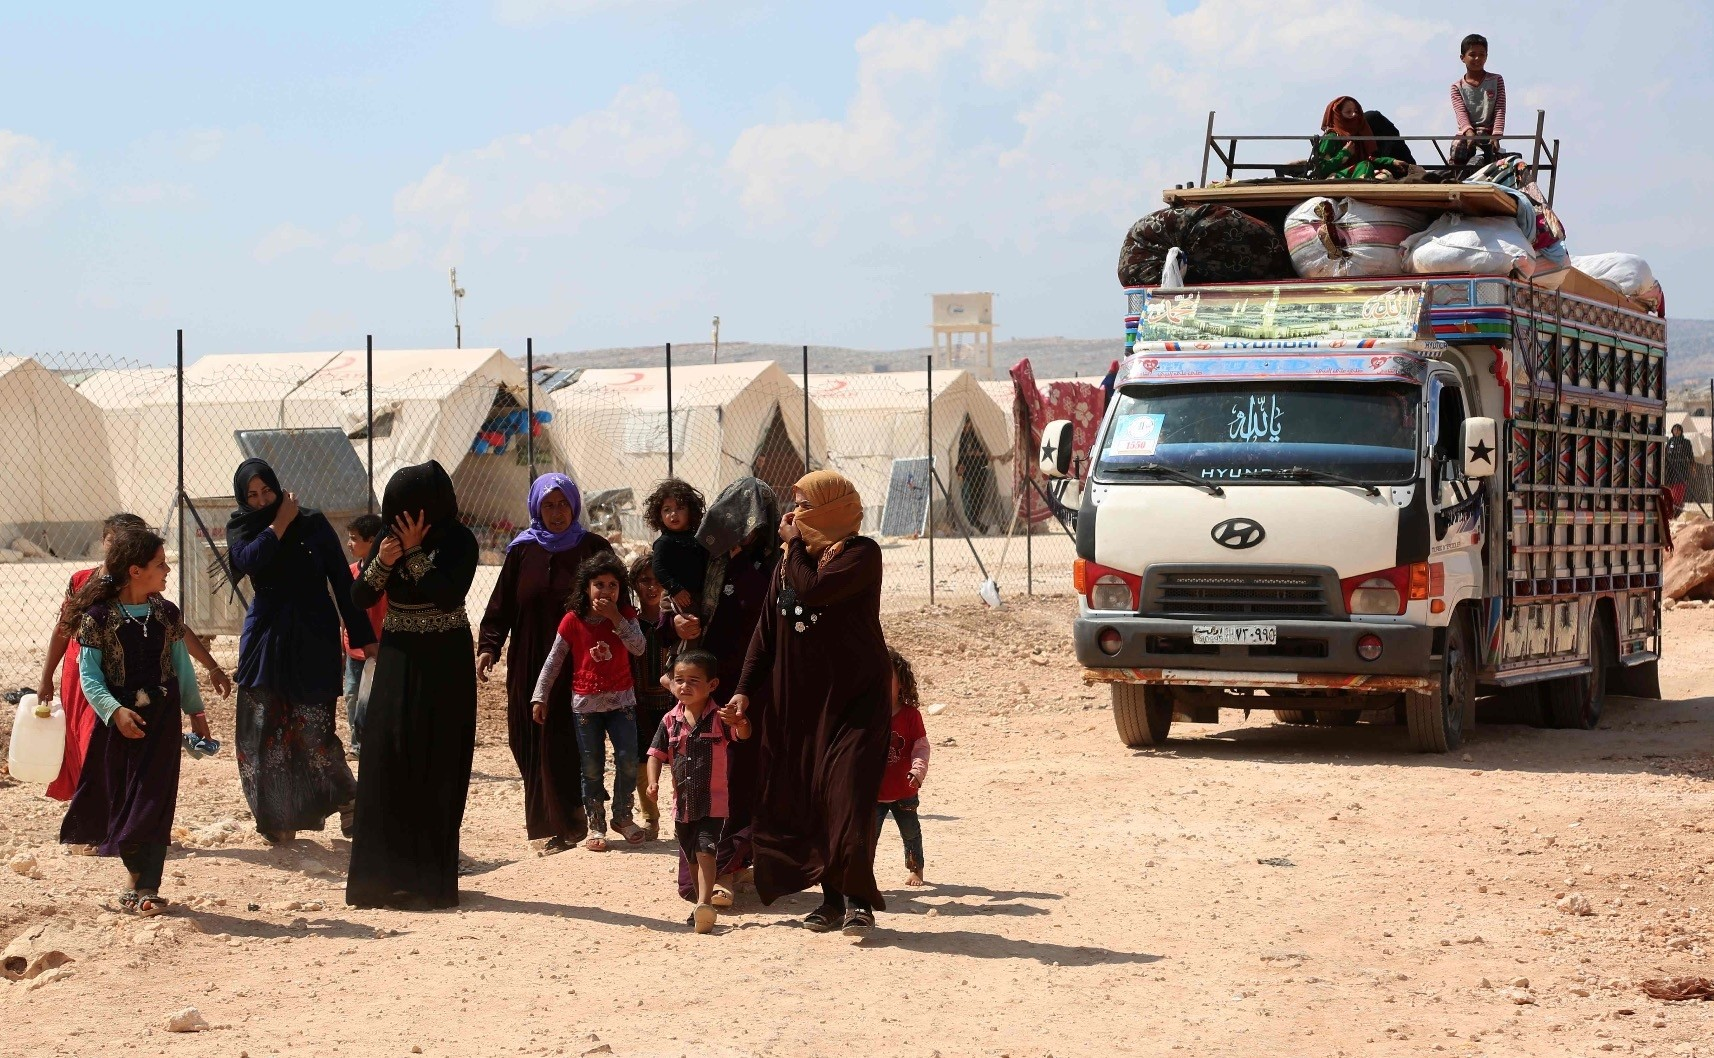 Displaced Syrians arrive with their belongings to a camp in Kafr Lusin, near the border with Turkey in the northern part of Syriau2019s Idlib province, Sept. 9.